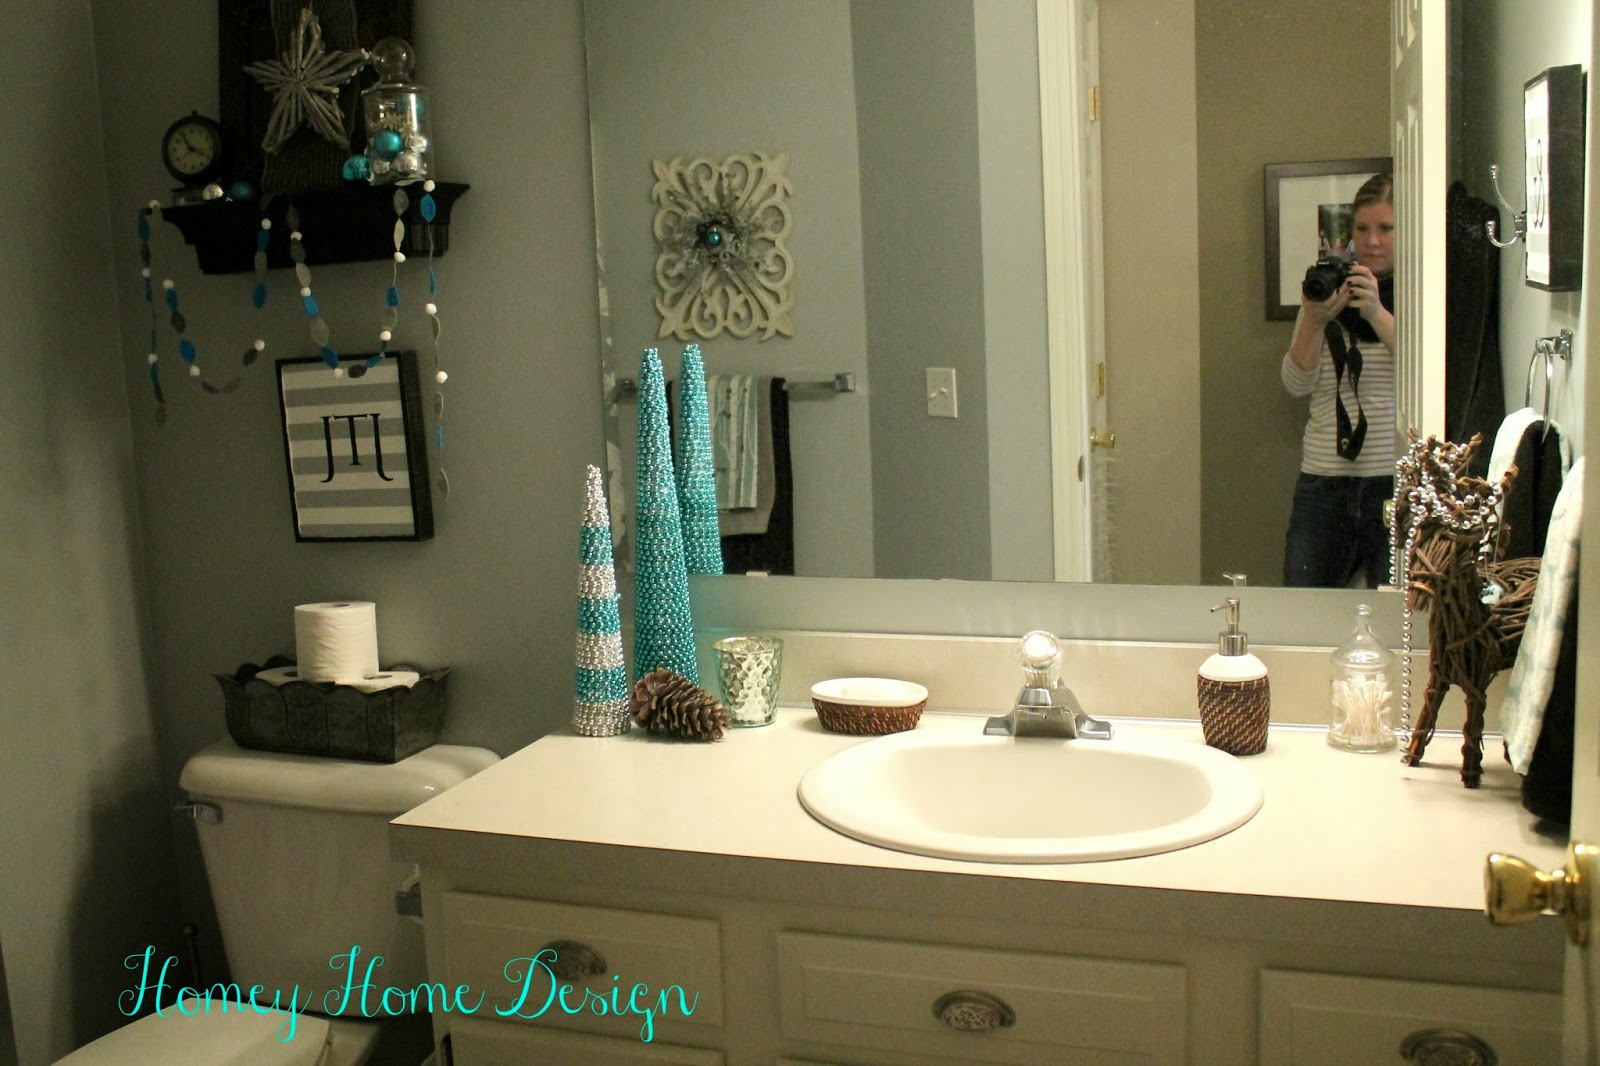 Homey home design bathroom christmas ideas - Bathroom decorative ideas ...